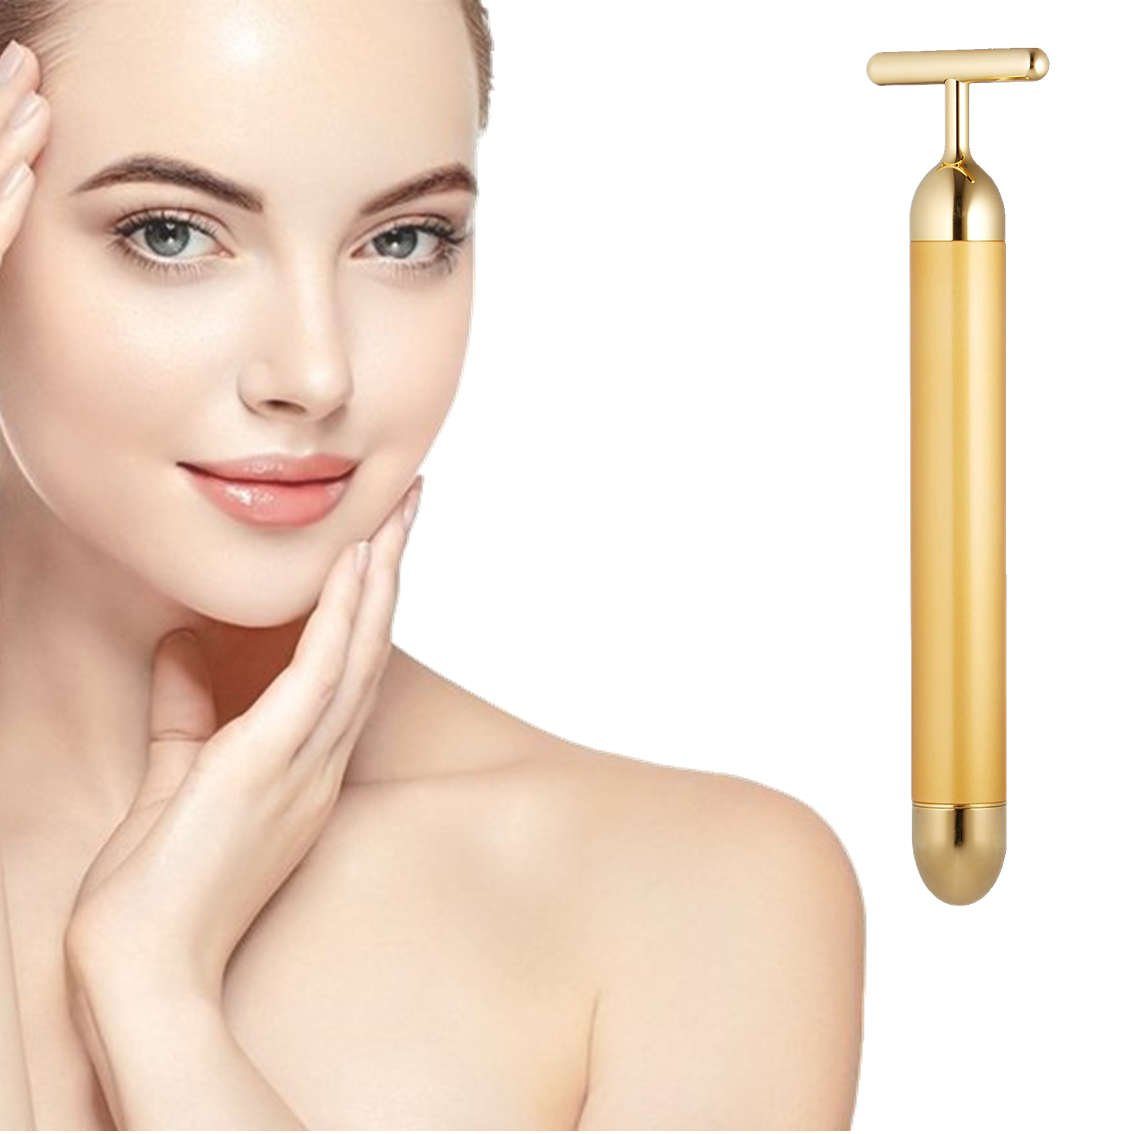 24k Golden pulse facial massager, Instant Face Lift, Anti-Wrinkles,Skin Tightening, Face Firming, Eliminate Dark Circles, and a good Anti-Aging Device for Man and Women (Gold)